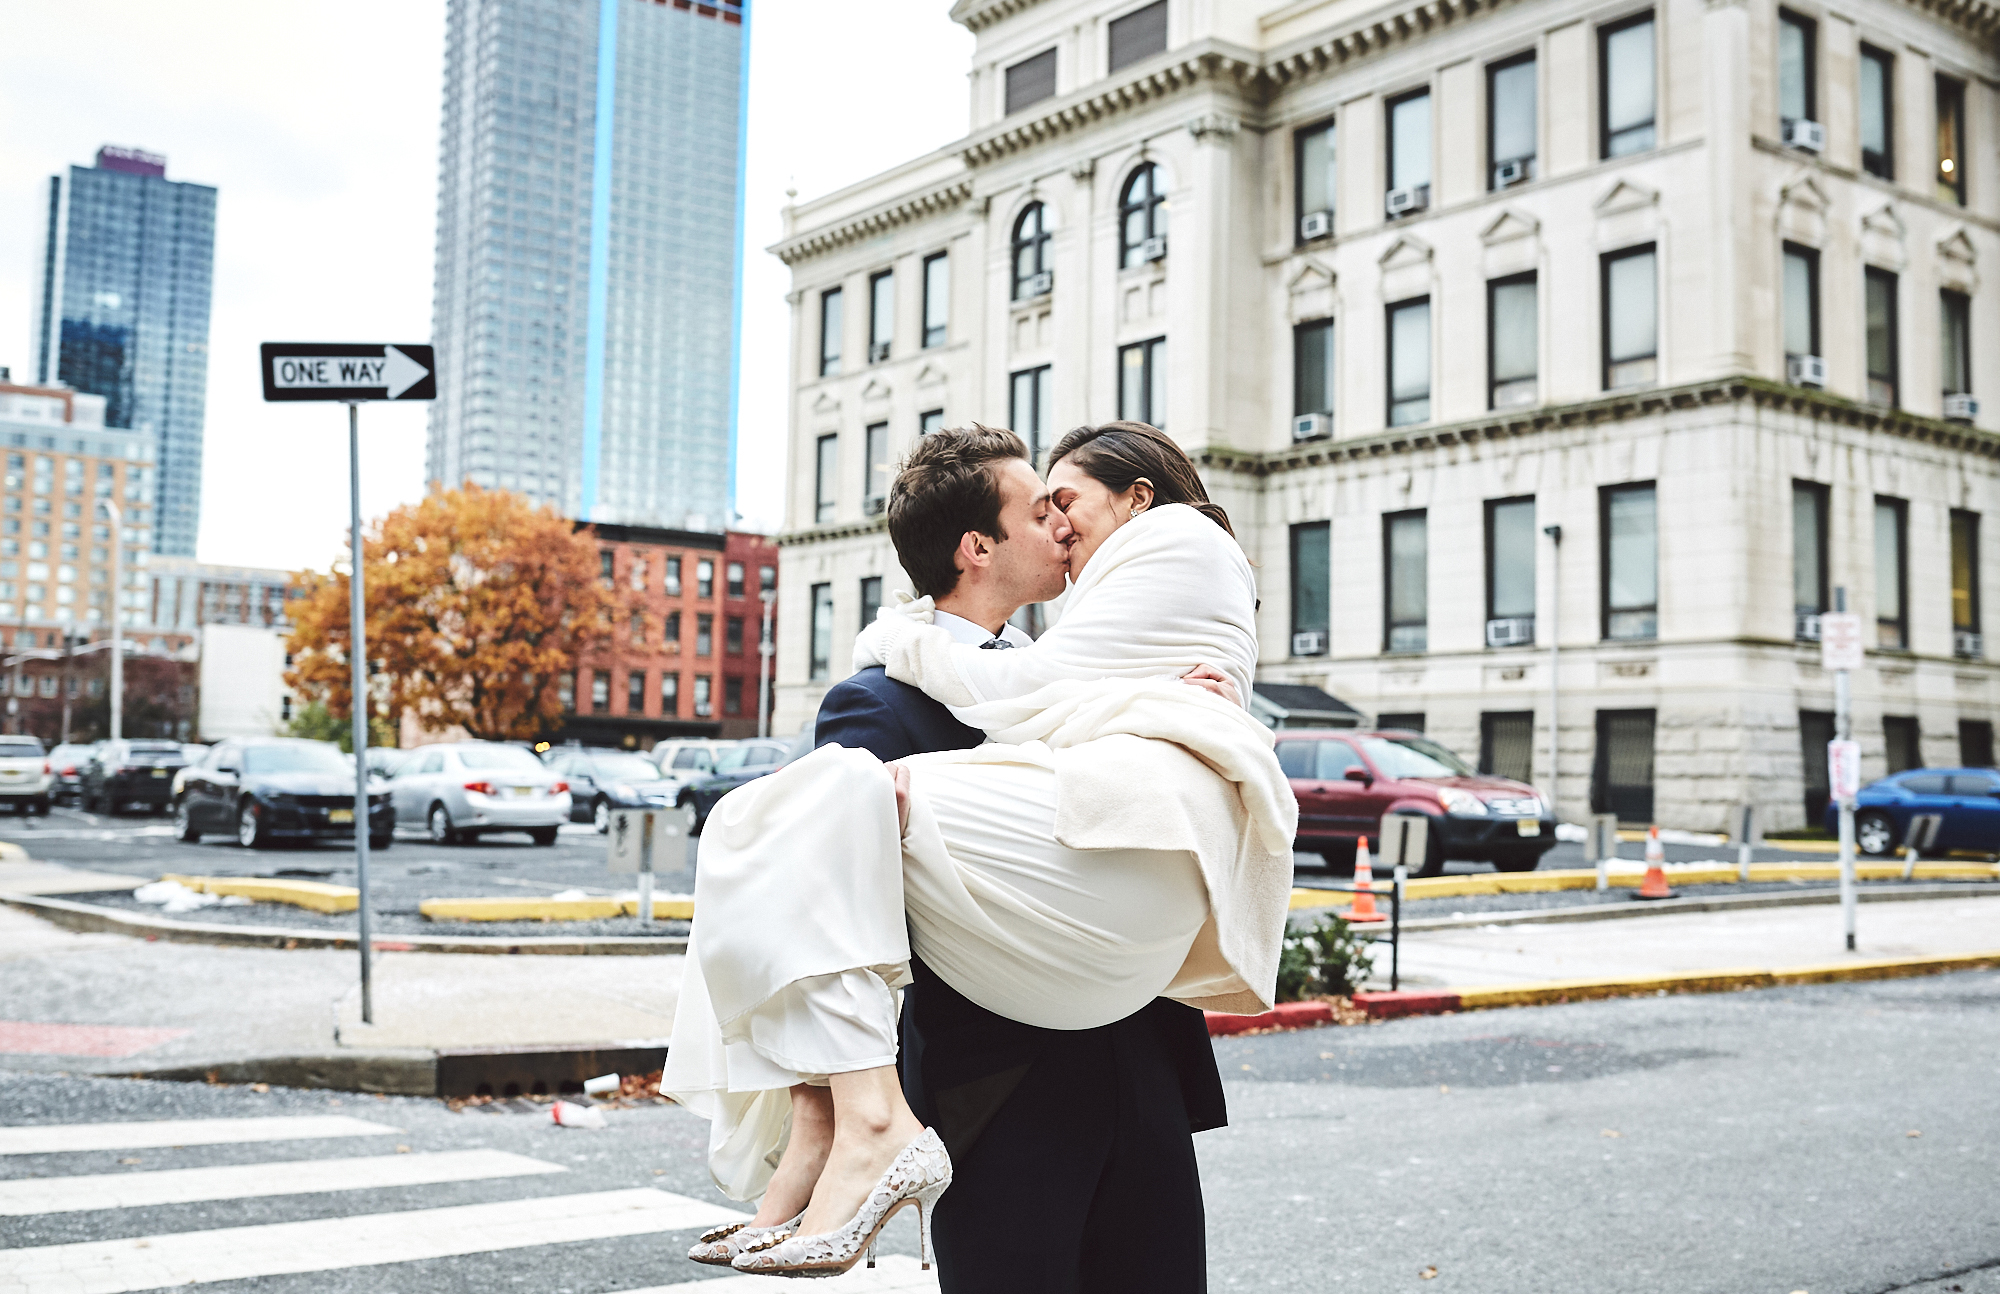 181116_JerseyCityCityHallFallWeddingPhotography_JerseyCityWeddingPhotographer_By_BriJohnsonWeddings_0083.jpg